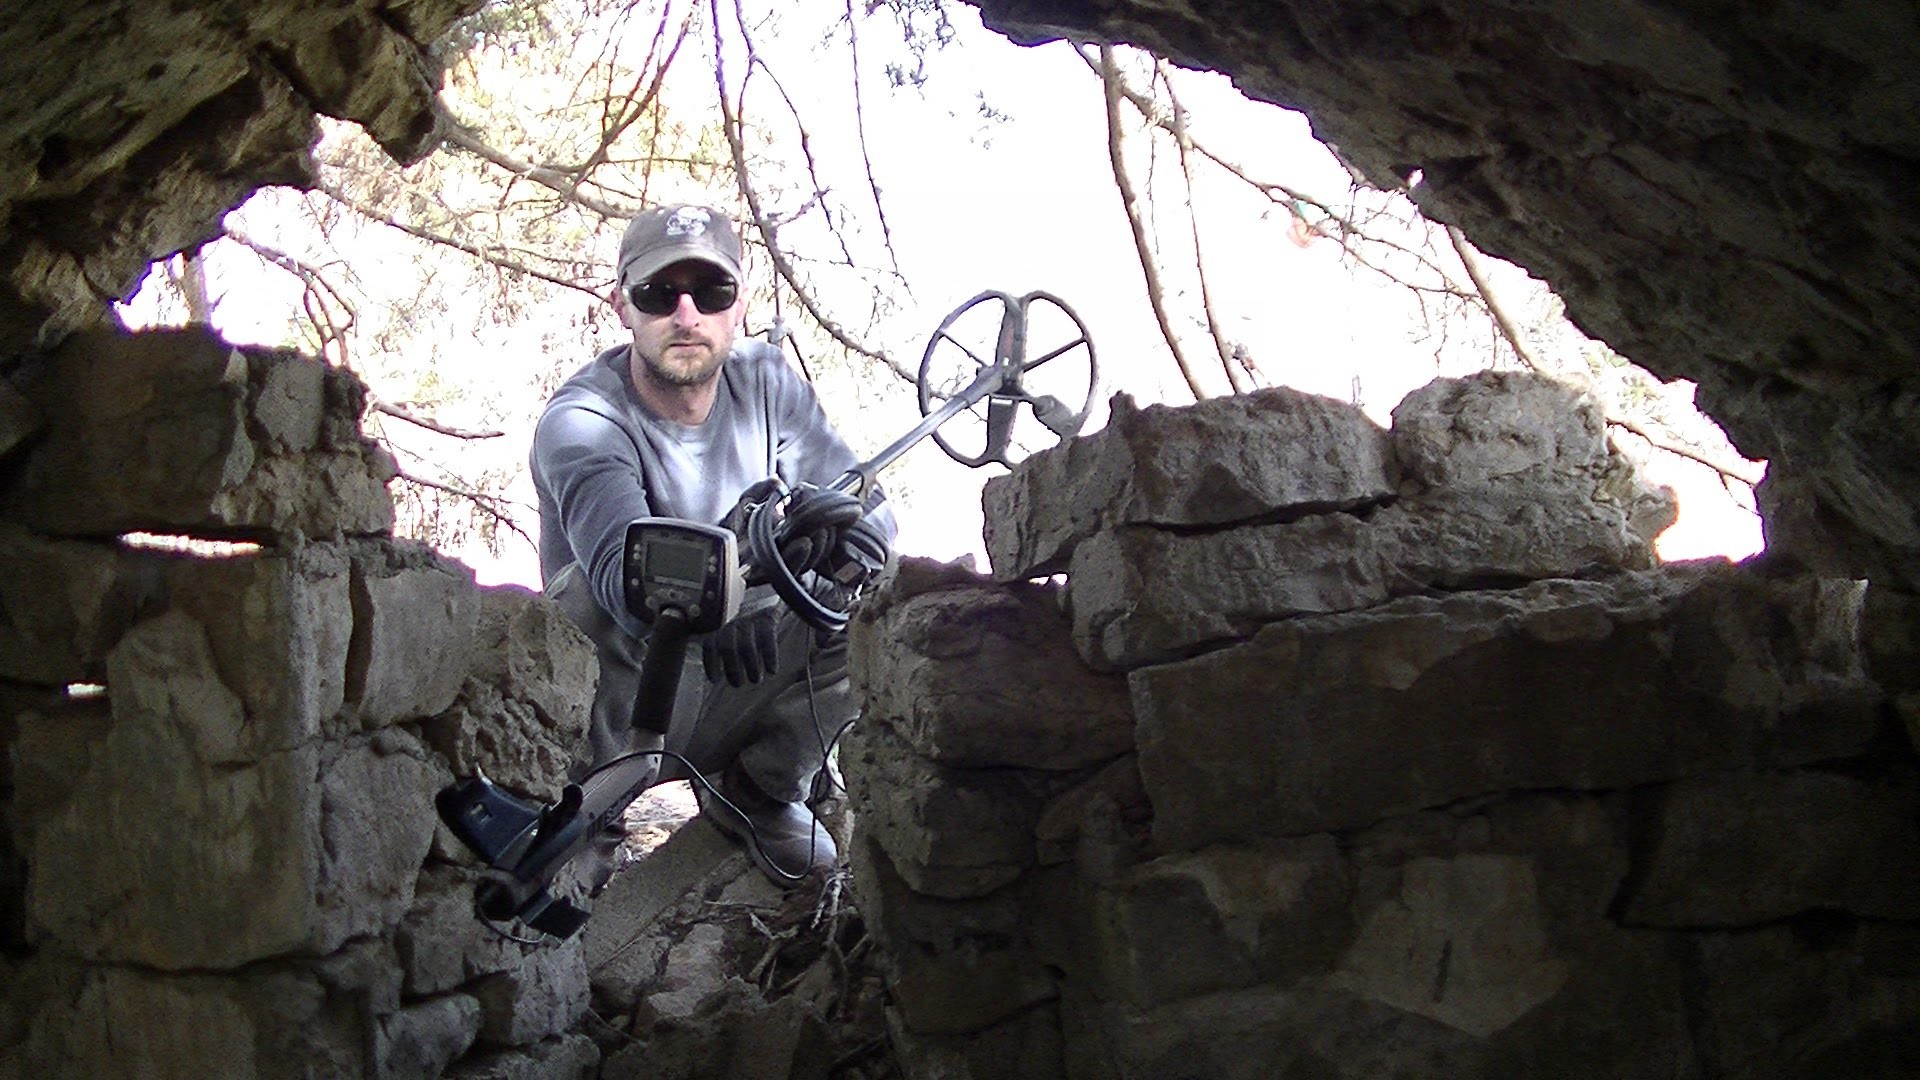 1920x1080 Abandoned Outlaw Hideout & Ghost Town Silver Metal Detecting